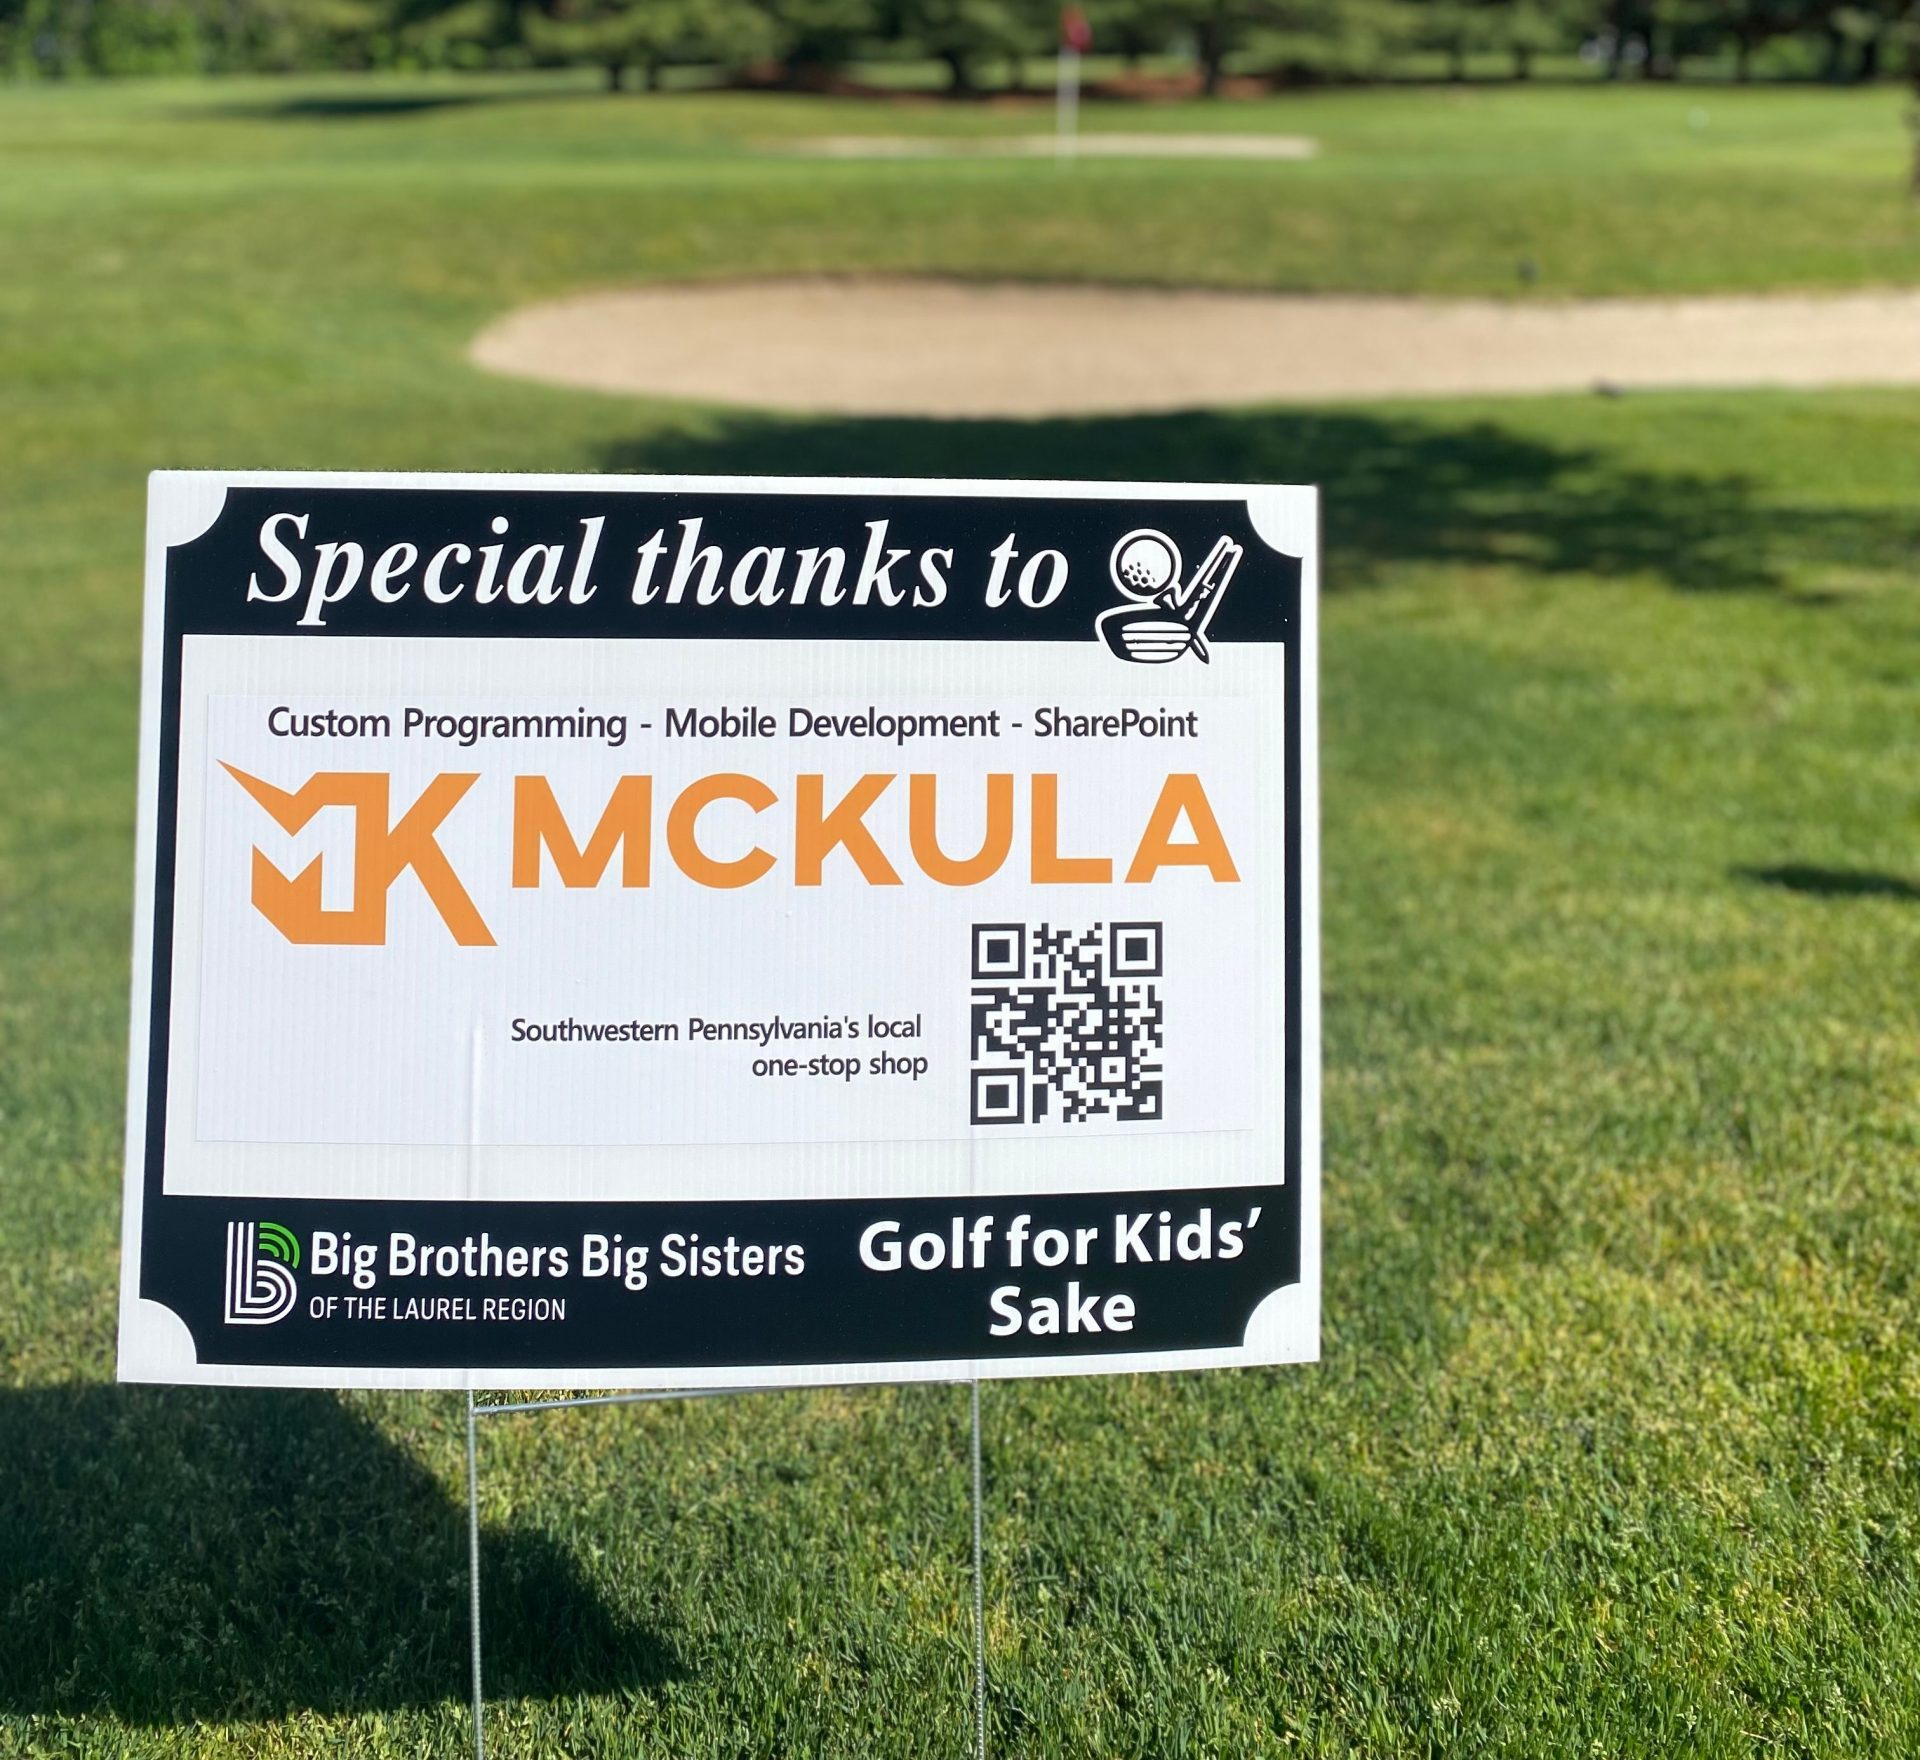 big brothers big sisters advertisement on golf course